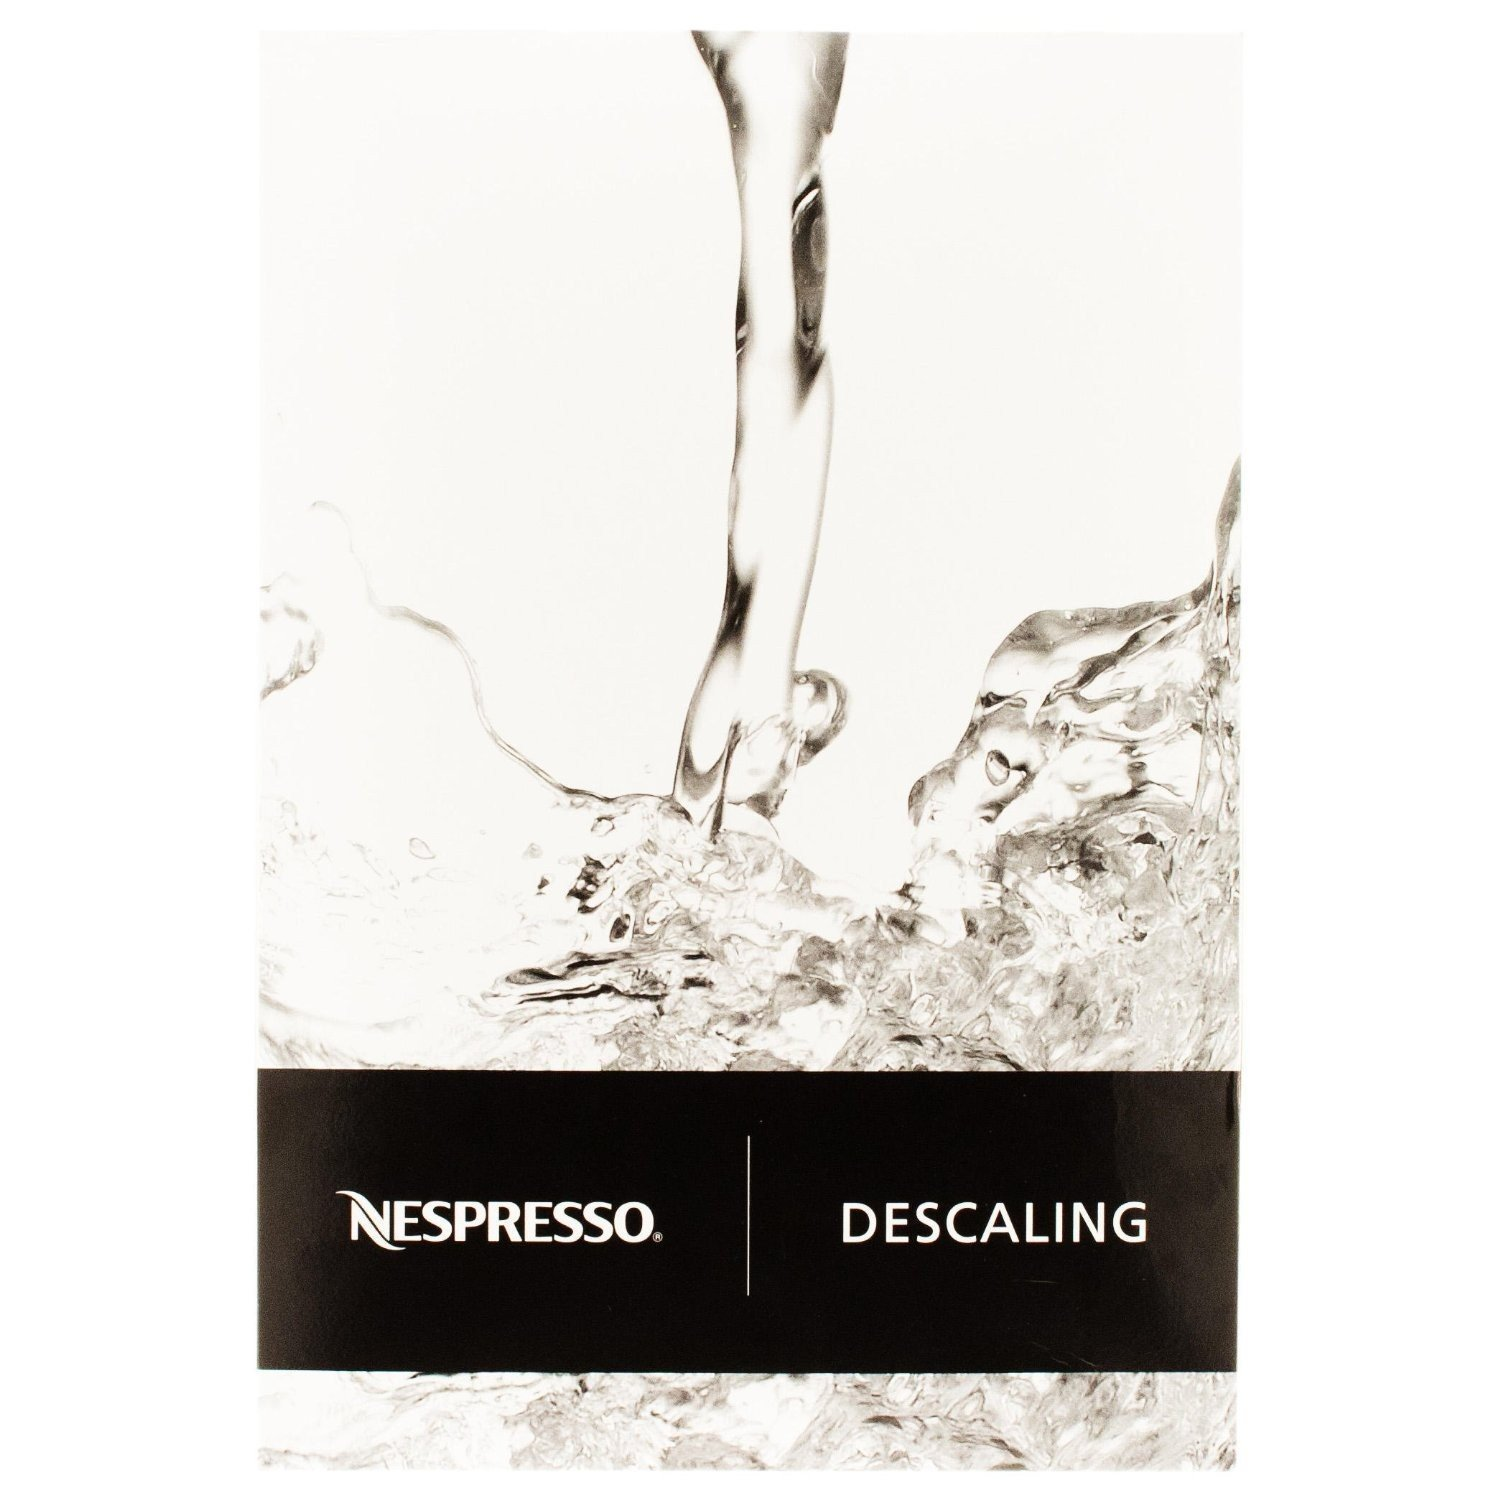 Nespresso Descaling Solution, Fits all Models kLnaBW, 8 Packets